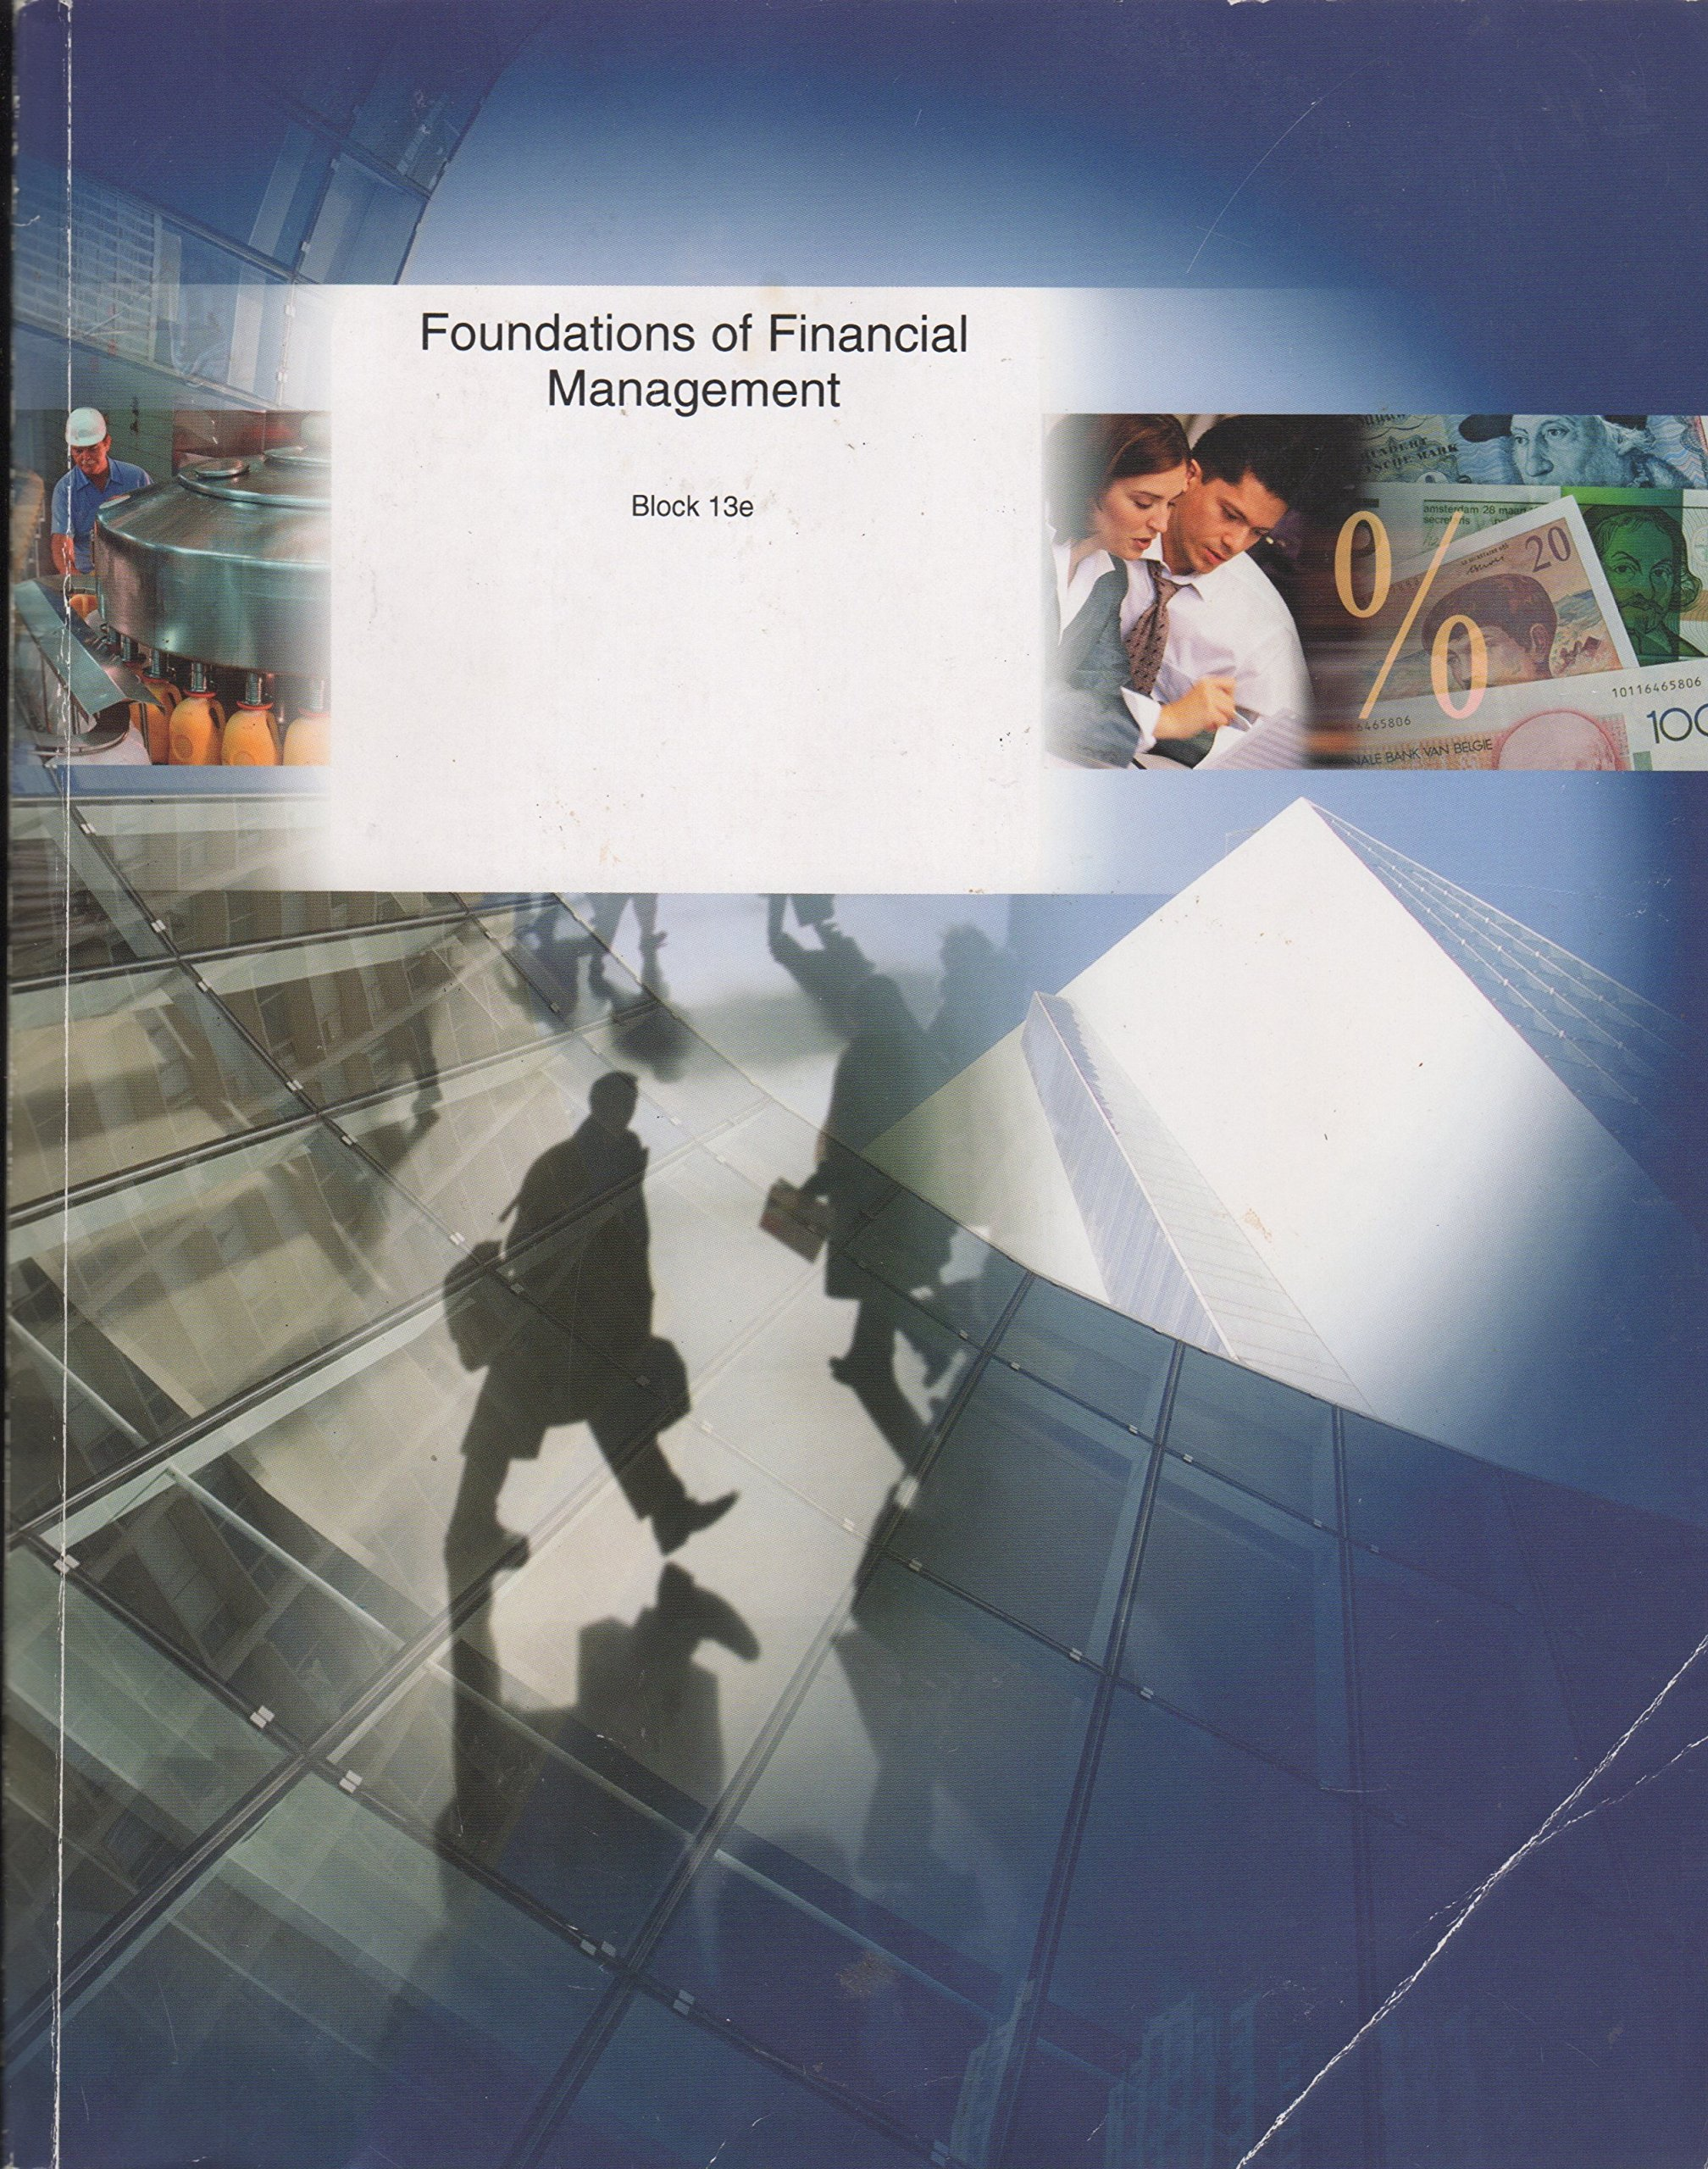 Foundations of financial management 13th edition block 13e custom foundations of financial management 13th edition block 13e custom stanley b block geoffrey a hirt bartley danielsen 9780390974716 amazon books fandeluxe Gallery